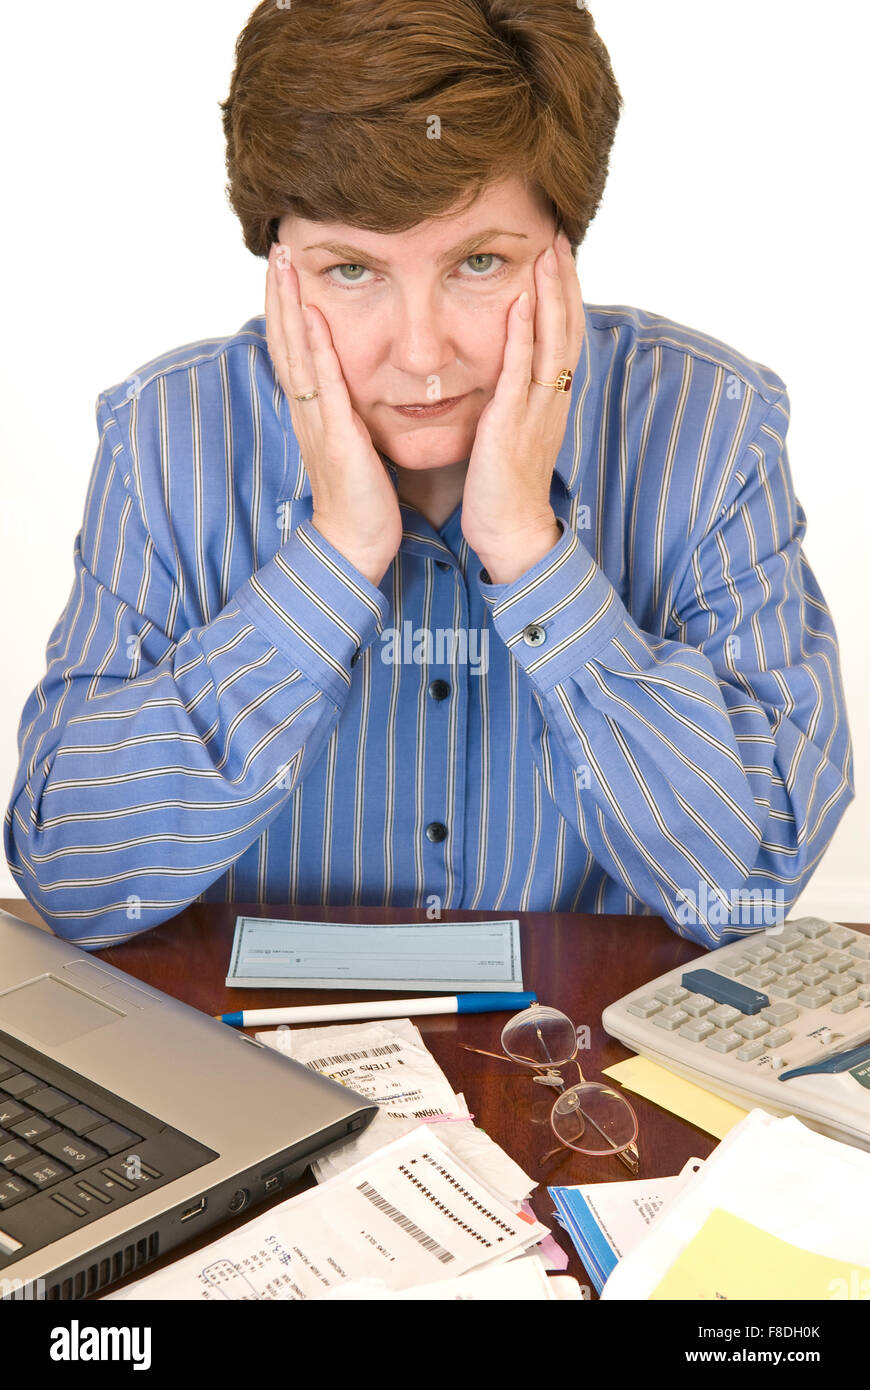 A Middle Aged Woman Surrounding by her Laptop, Checkbook, Calculator and Paperwork Looking Financially Overwhelmed. - Stock Image